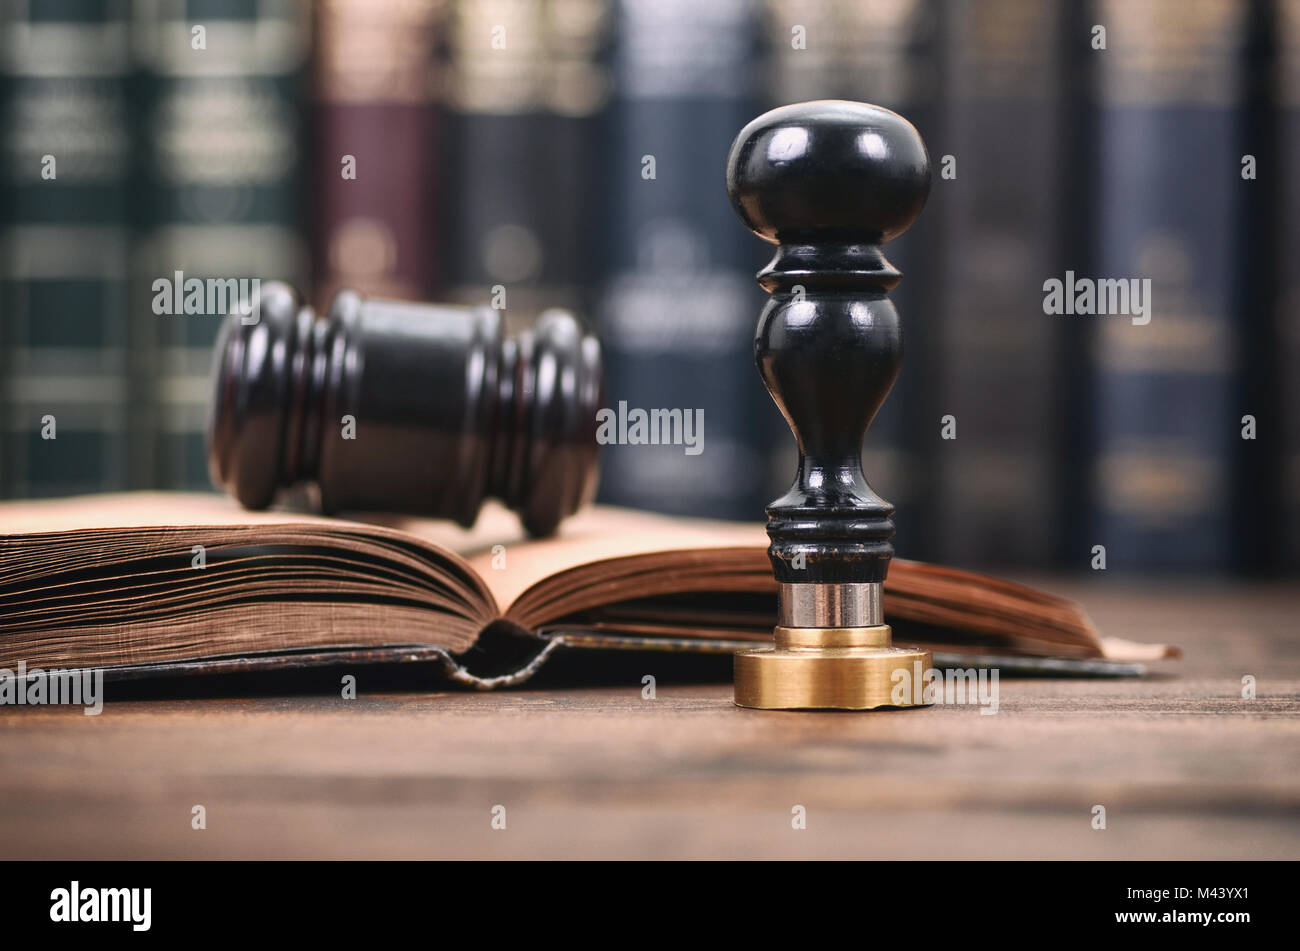 Notary seal , Judge Gavel, Notarized document concept, Legality concept. - Stock Image